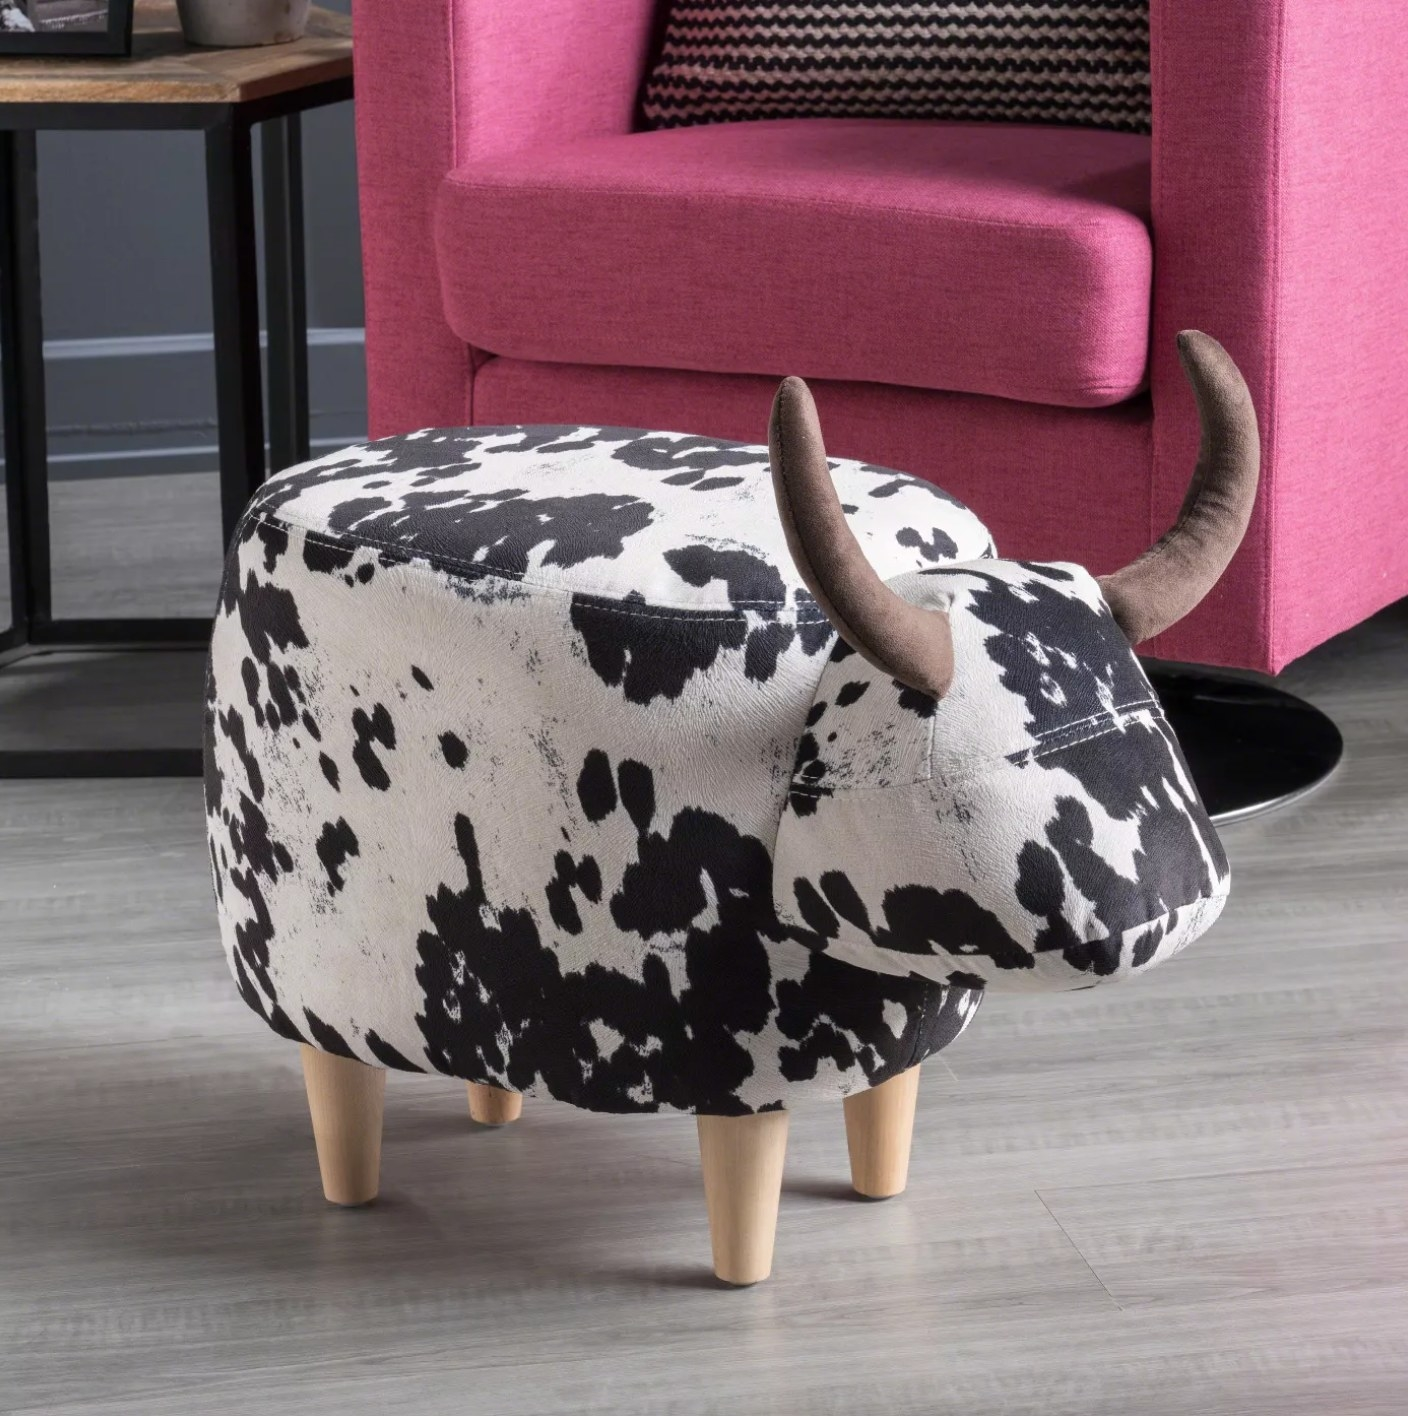 The cow ottoman in black and white